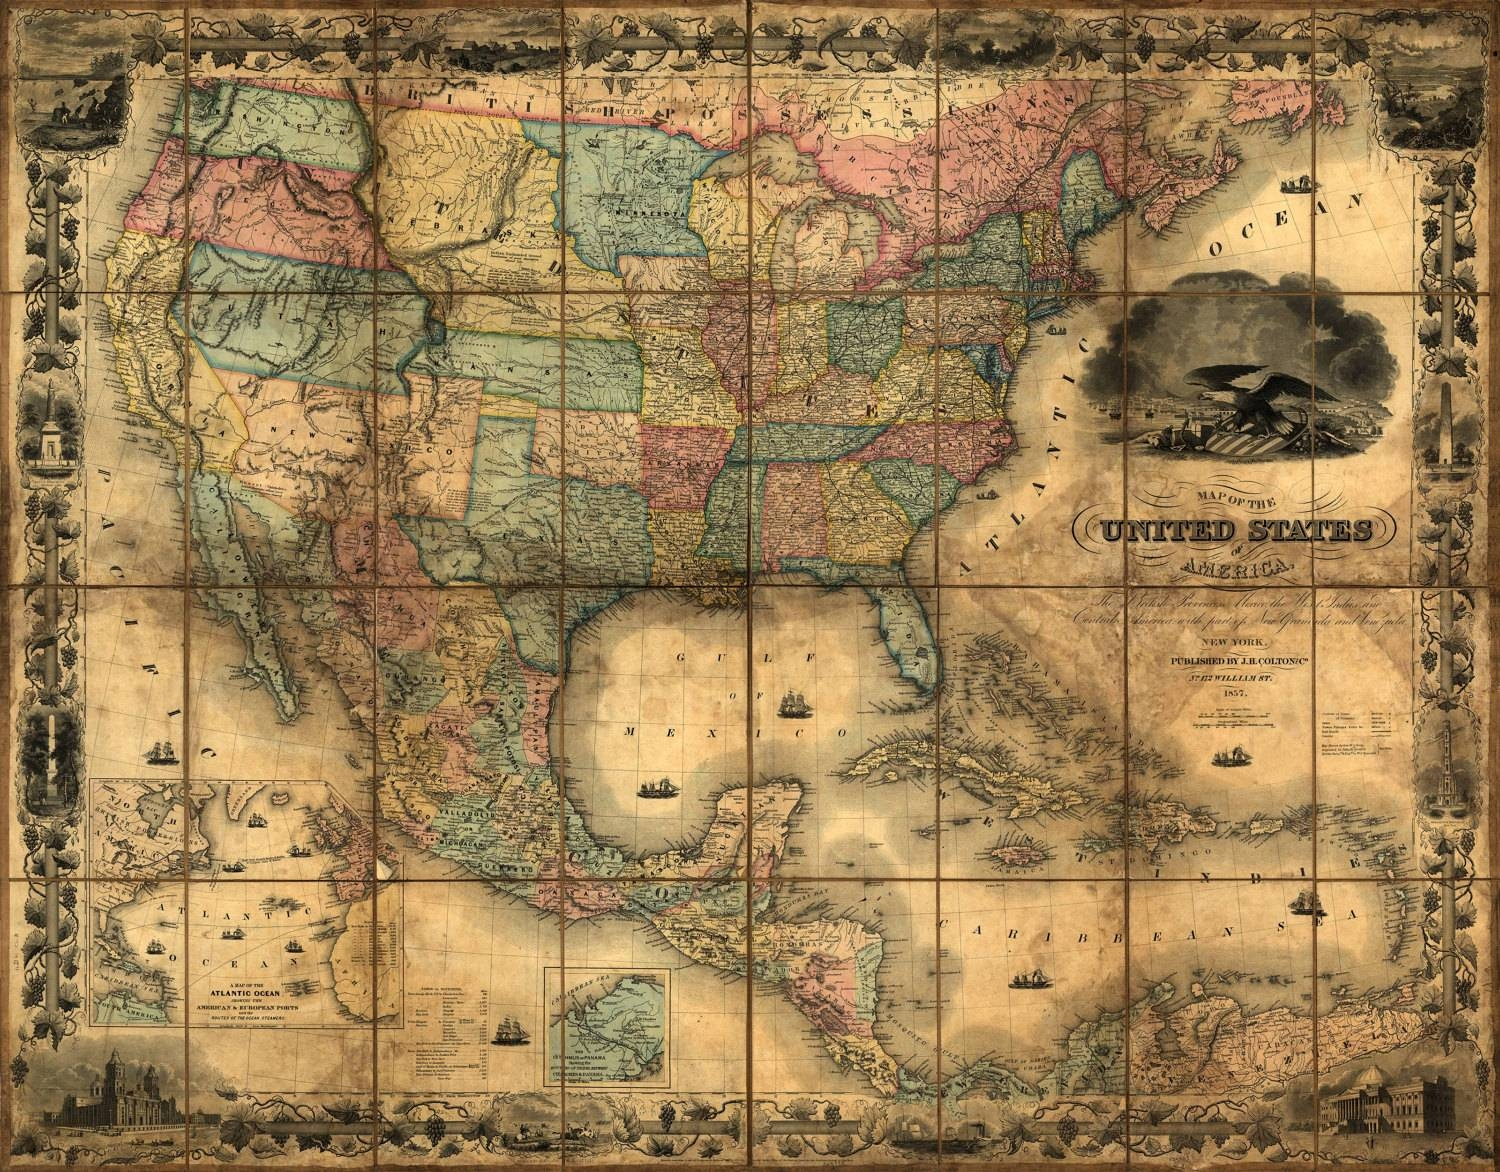 United States Map, Vintage Map, Canvas Large Map, Wall Art Map Within Most Up To Date United States Map Wall Art (View 12 of 20)